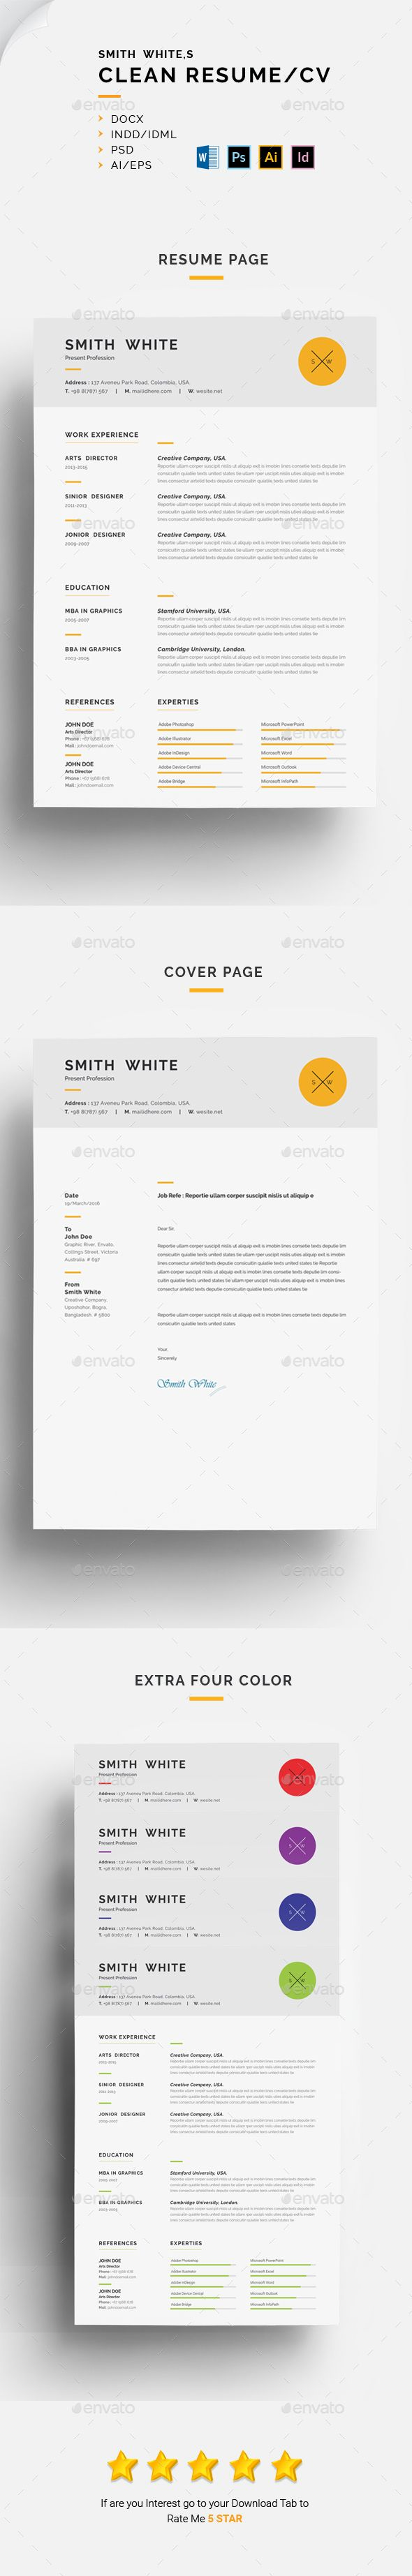 7 best carries Resume images on Pinterest | Resume templates, Cv ...